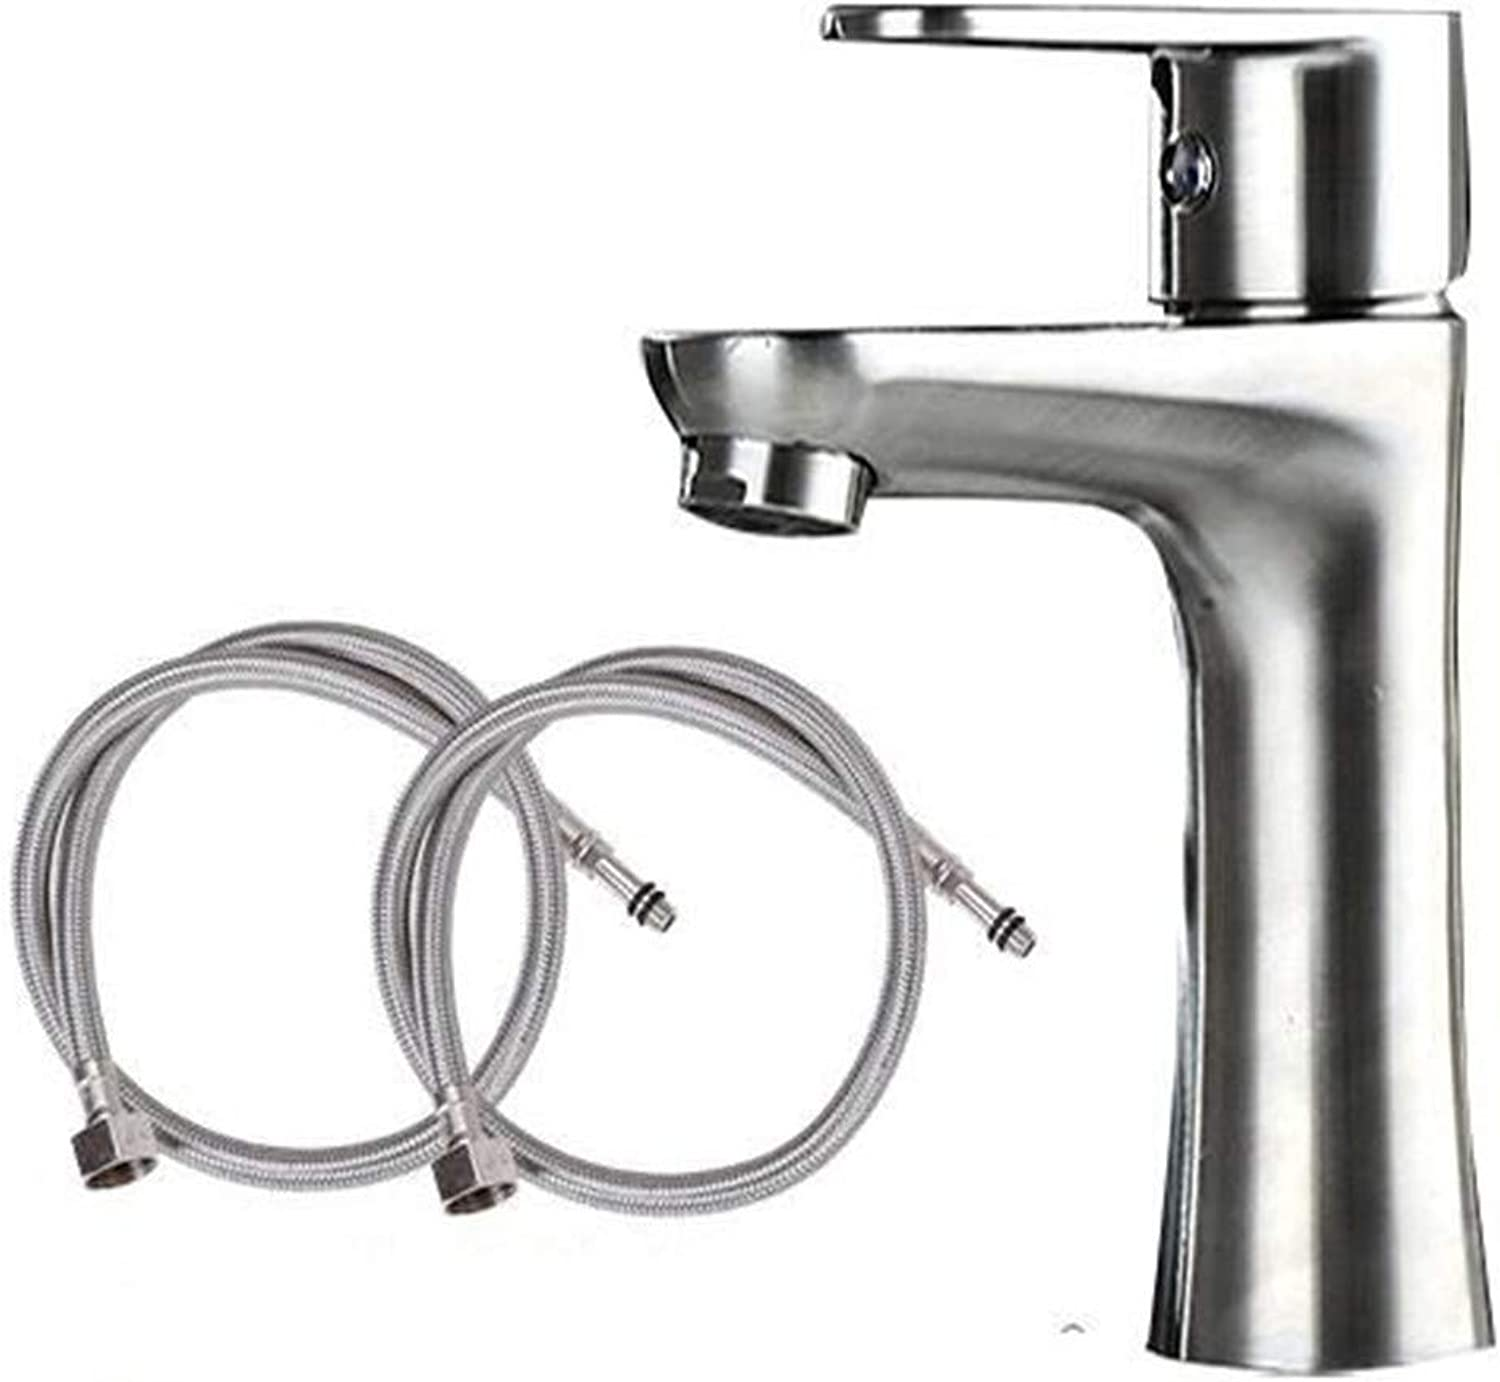 LYBSD Bathroom Sink Taps Hot and cold water faucet basin bathroom bathroom kitchen XMY waist faucet piping